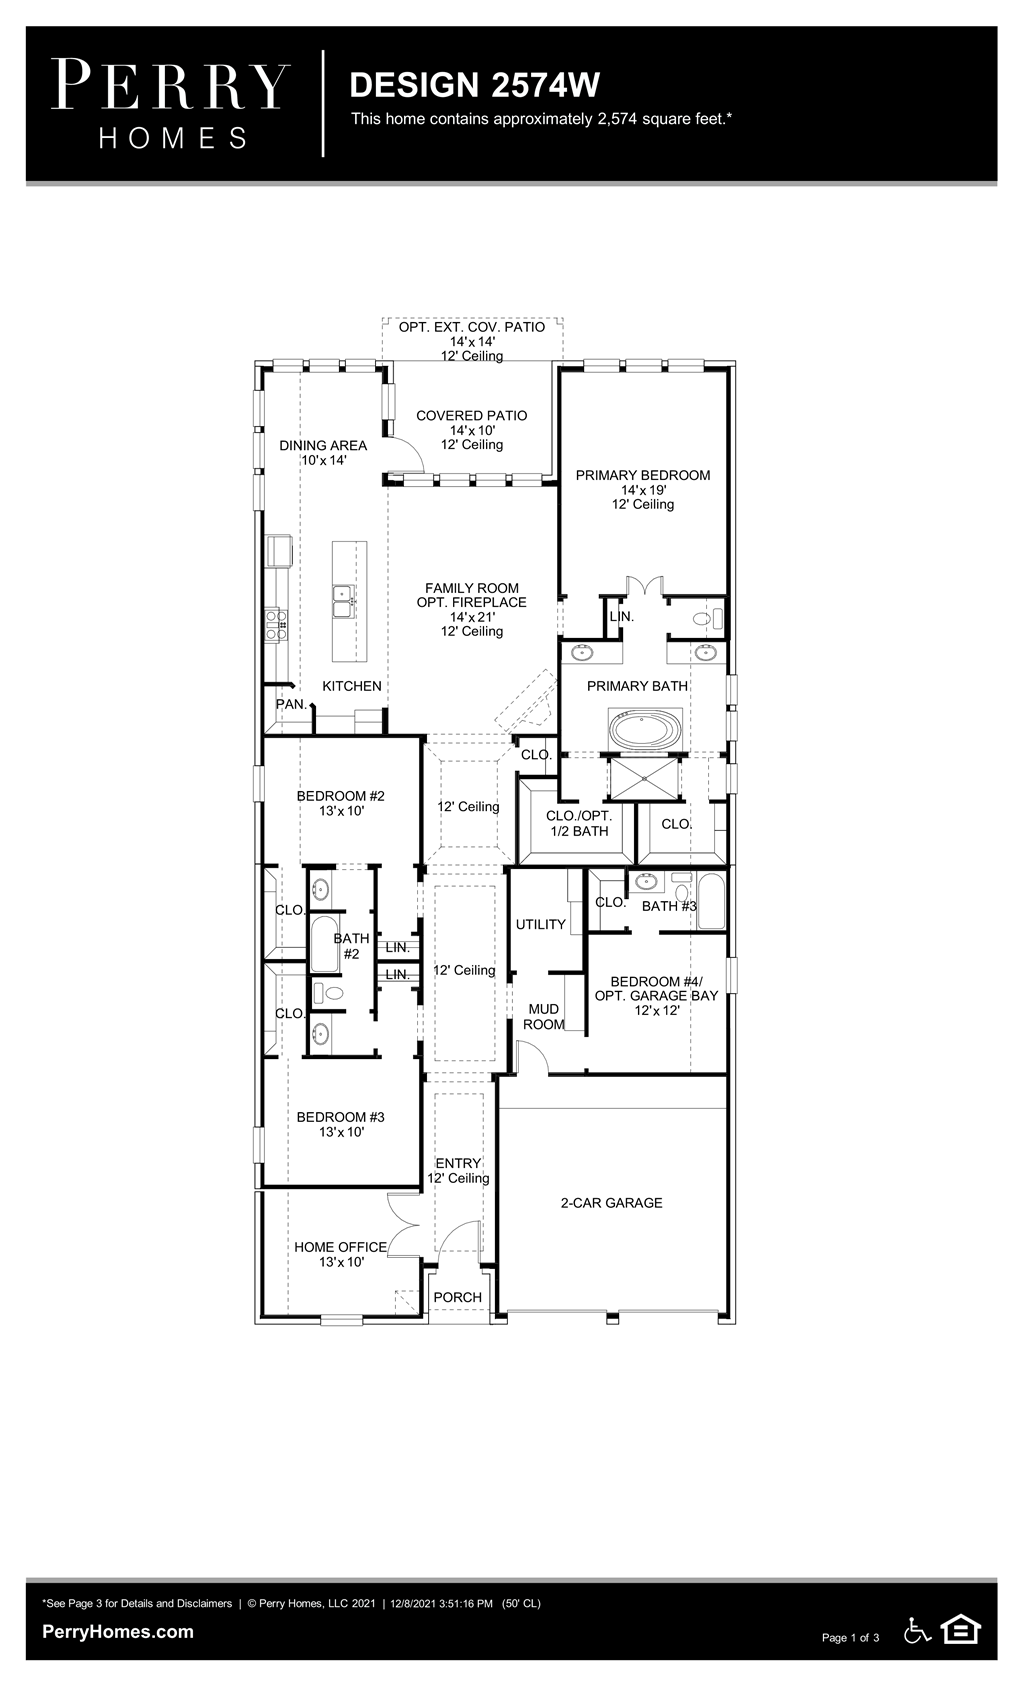 Floor Plan for 2574W